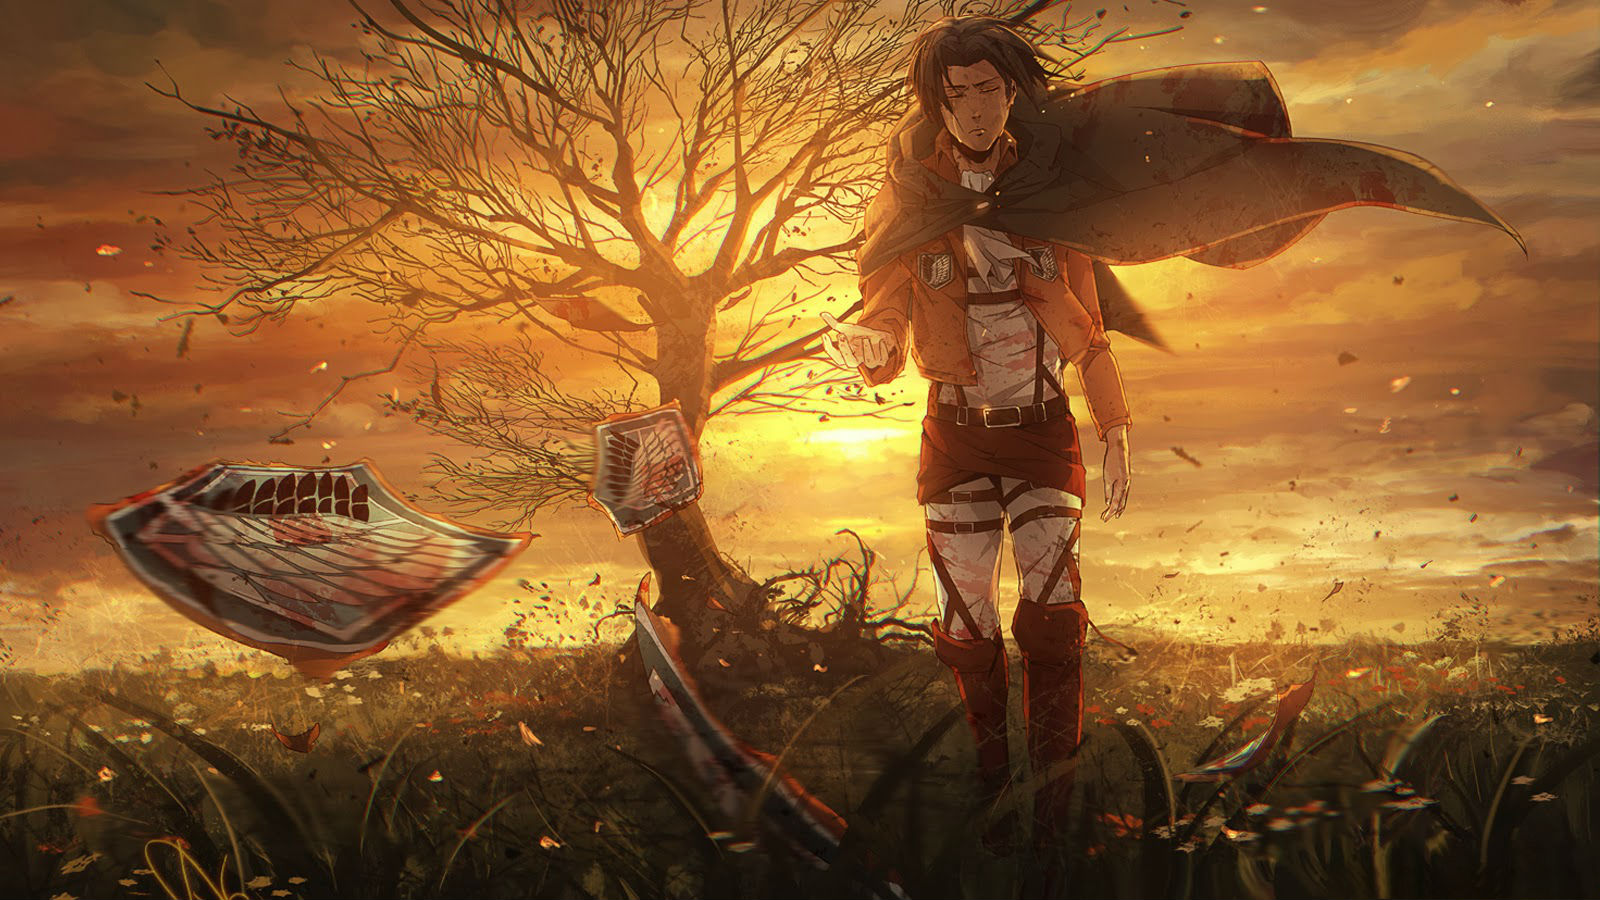 Sizing also makes later remov. Attack on Titan wallpaper 12